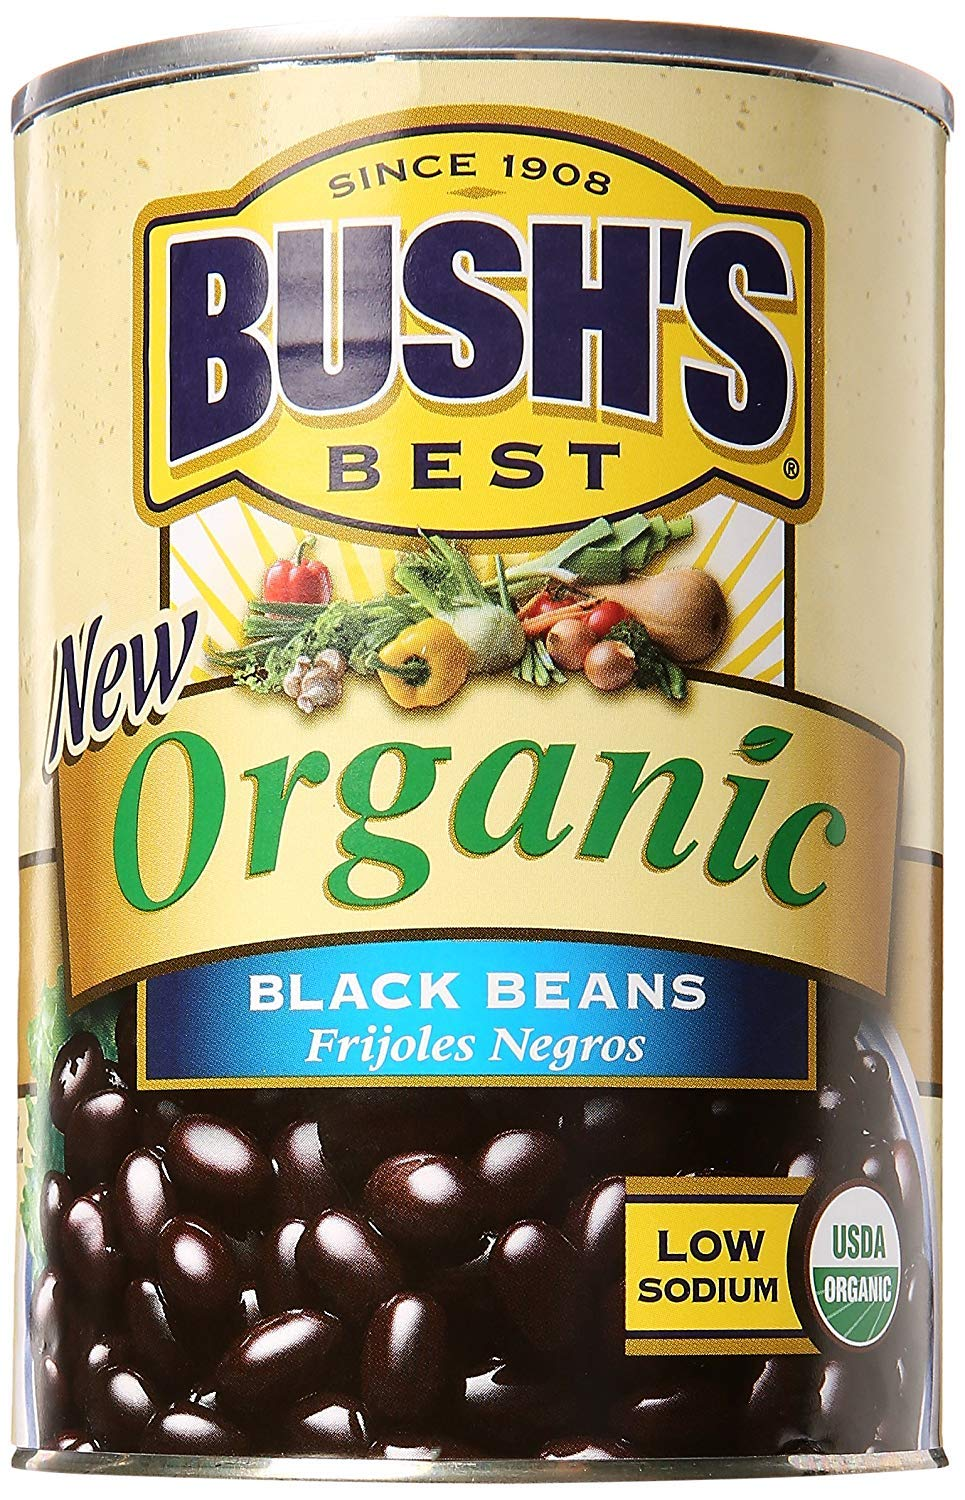 BUSH'S BEST Organic Beans, 15 Ounce Can ,Canned Beans,USDA Certified Organic, Source of Plant Based Protein and Fiber, Low Fat, Gluten Free (12)